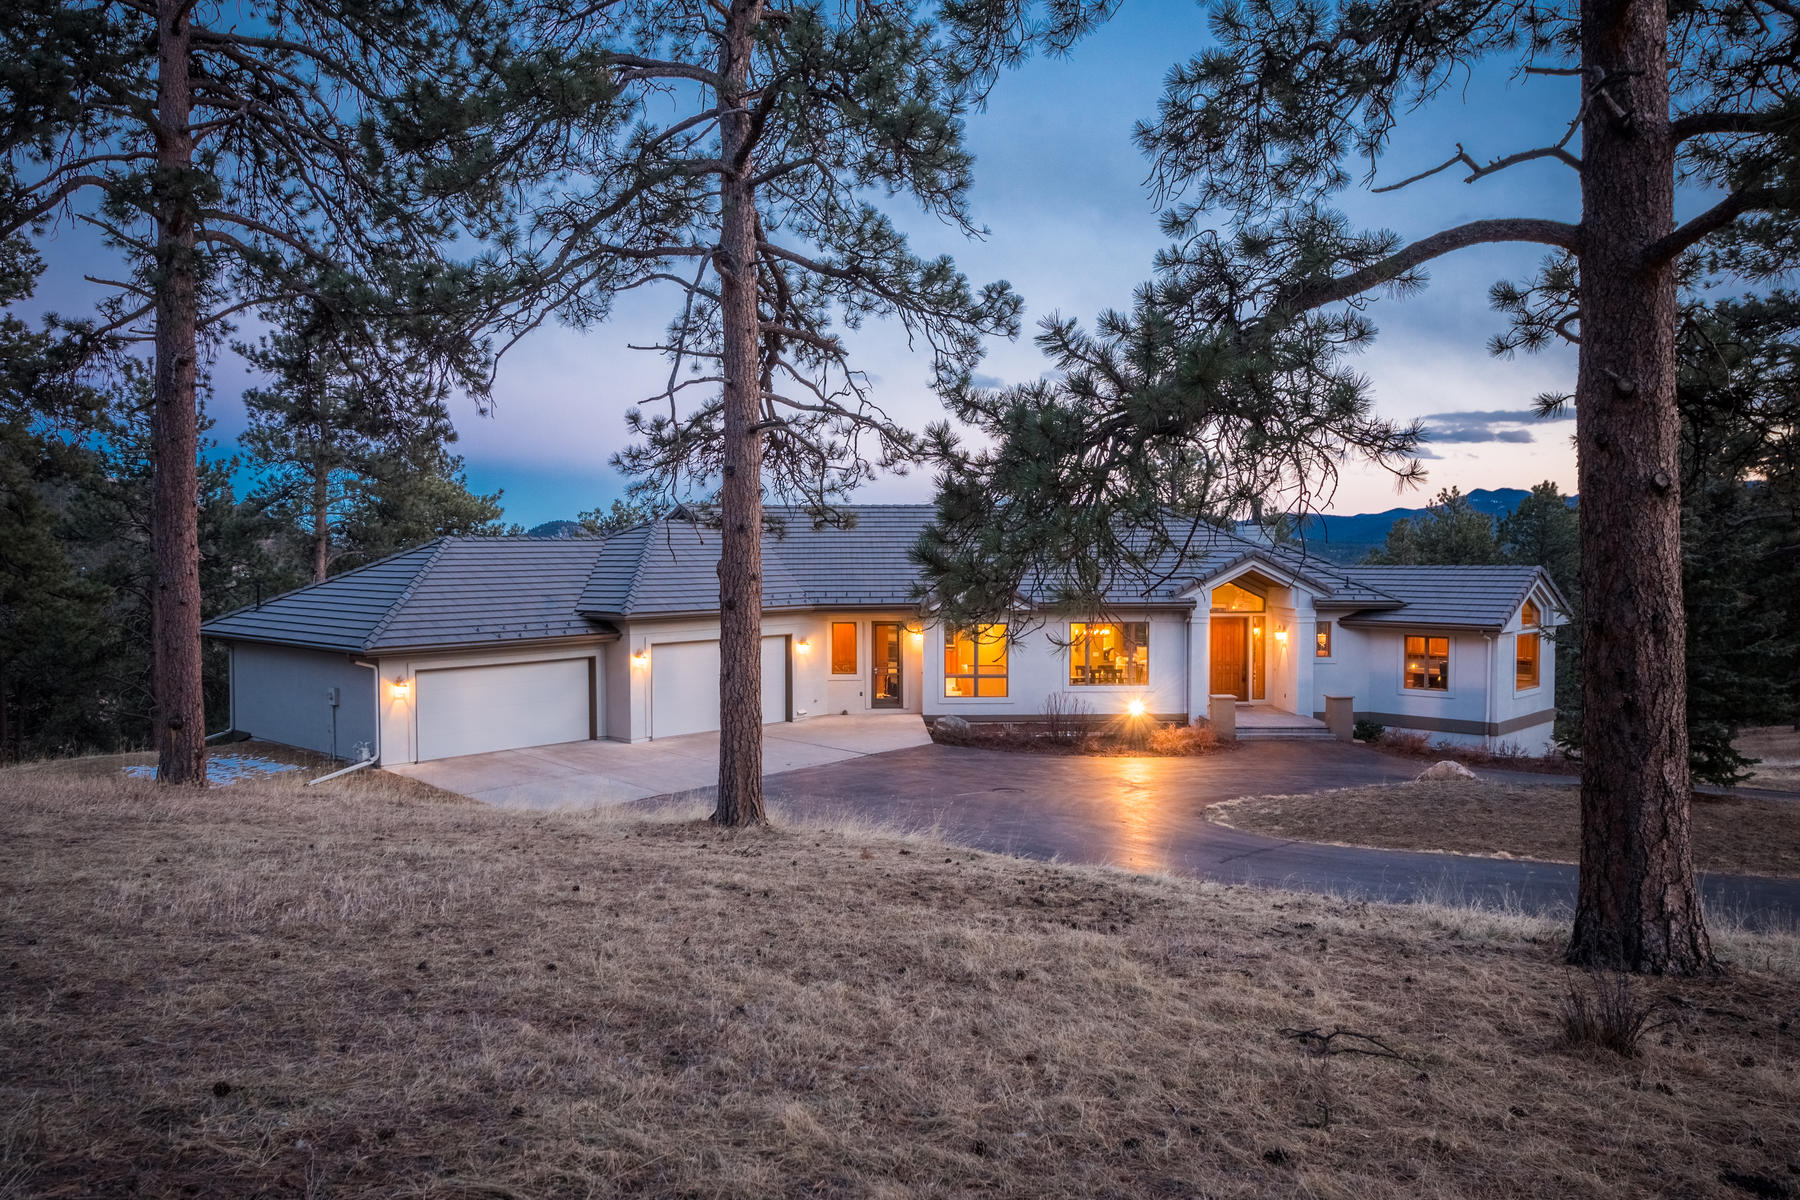 Single Family Home for Sale at Main Level Living with Easy Open Floor Plan 1870 Larkspur Drive Golden, Colorado 80401 United States